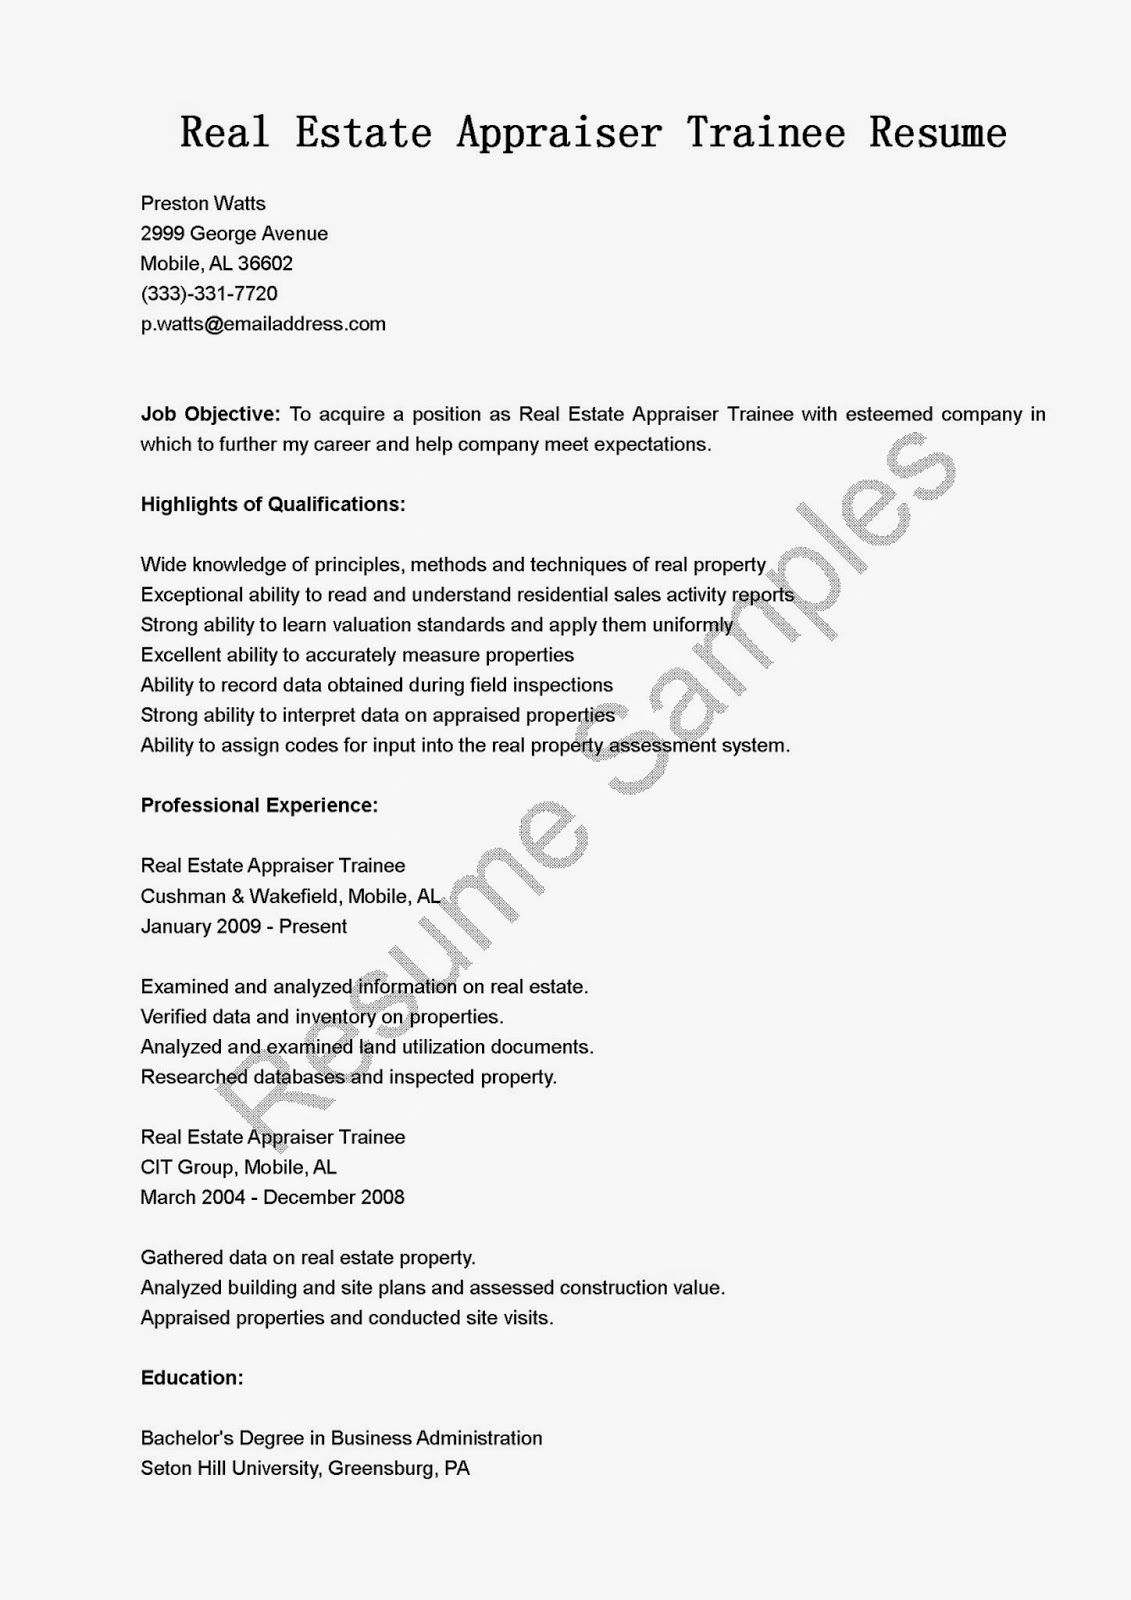 appraiser sample resumes also real estate appraiser trainee resume sample resume samples